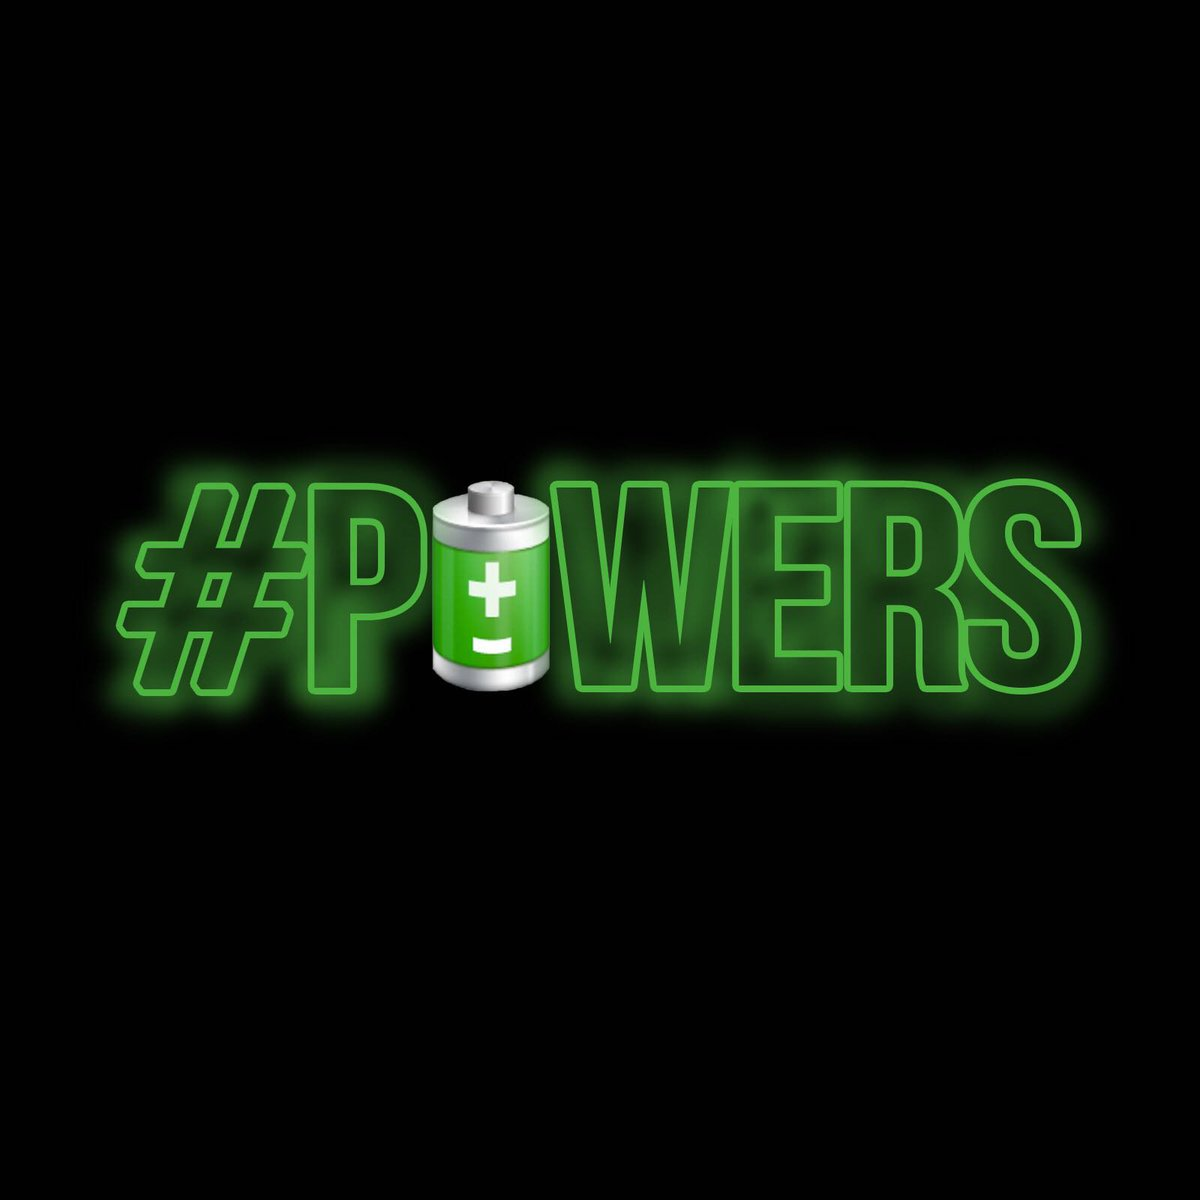 Cop the album on iTunes £5.99 14 songs, 32 artists, 2 weeks, 1 producer. https://t.co/YYVD3YzecP #POWERS https://t.co/pLx2tfEeYb